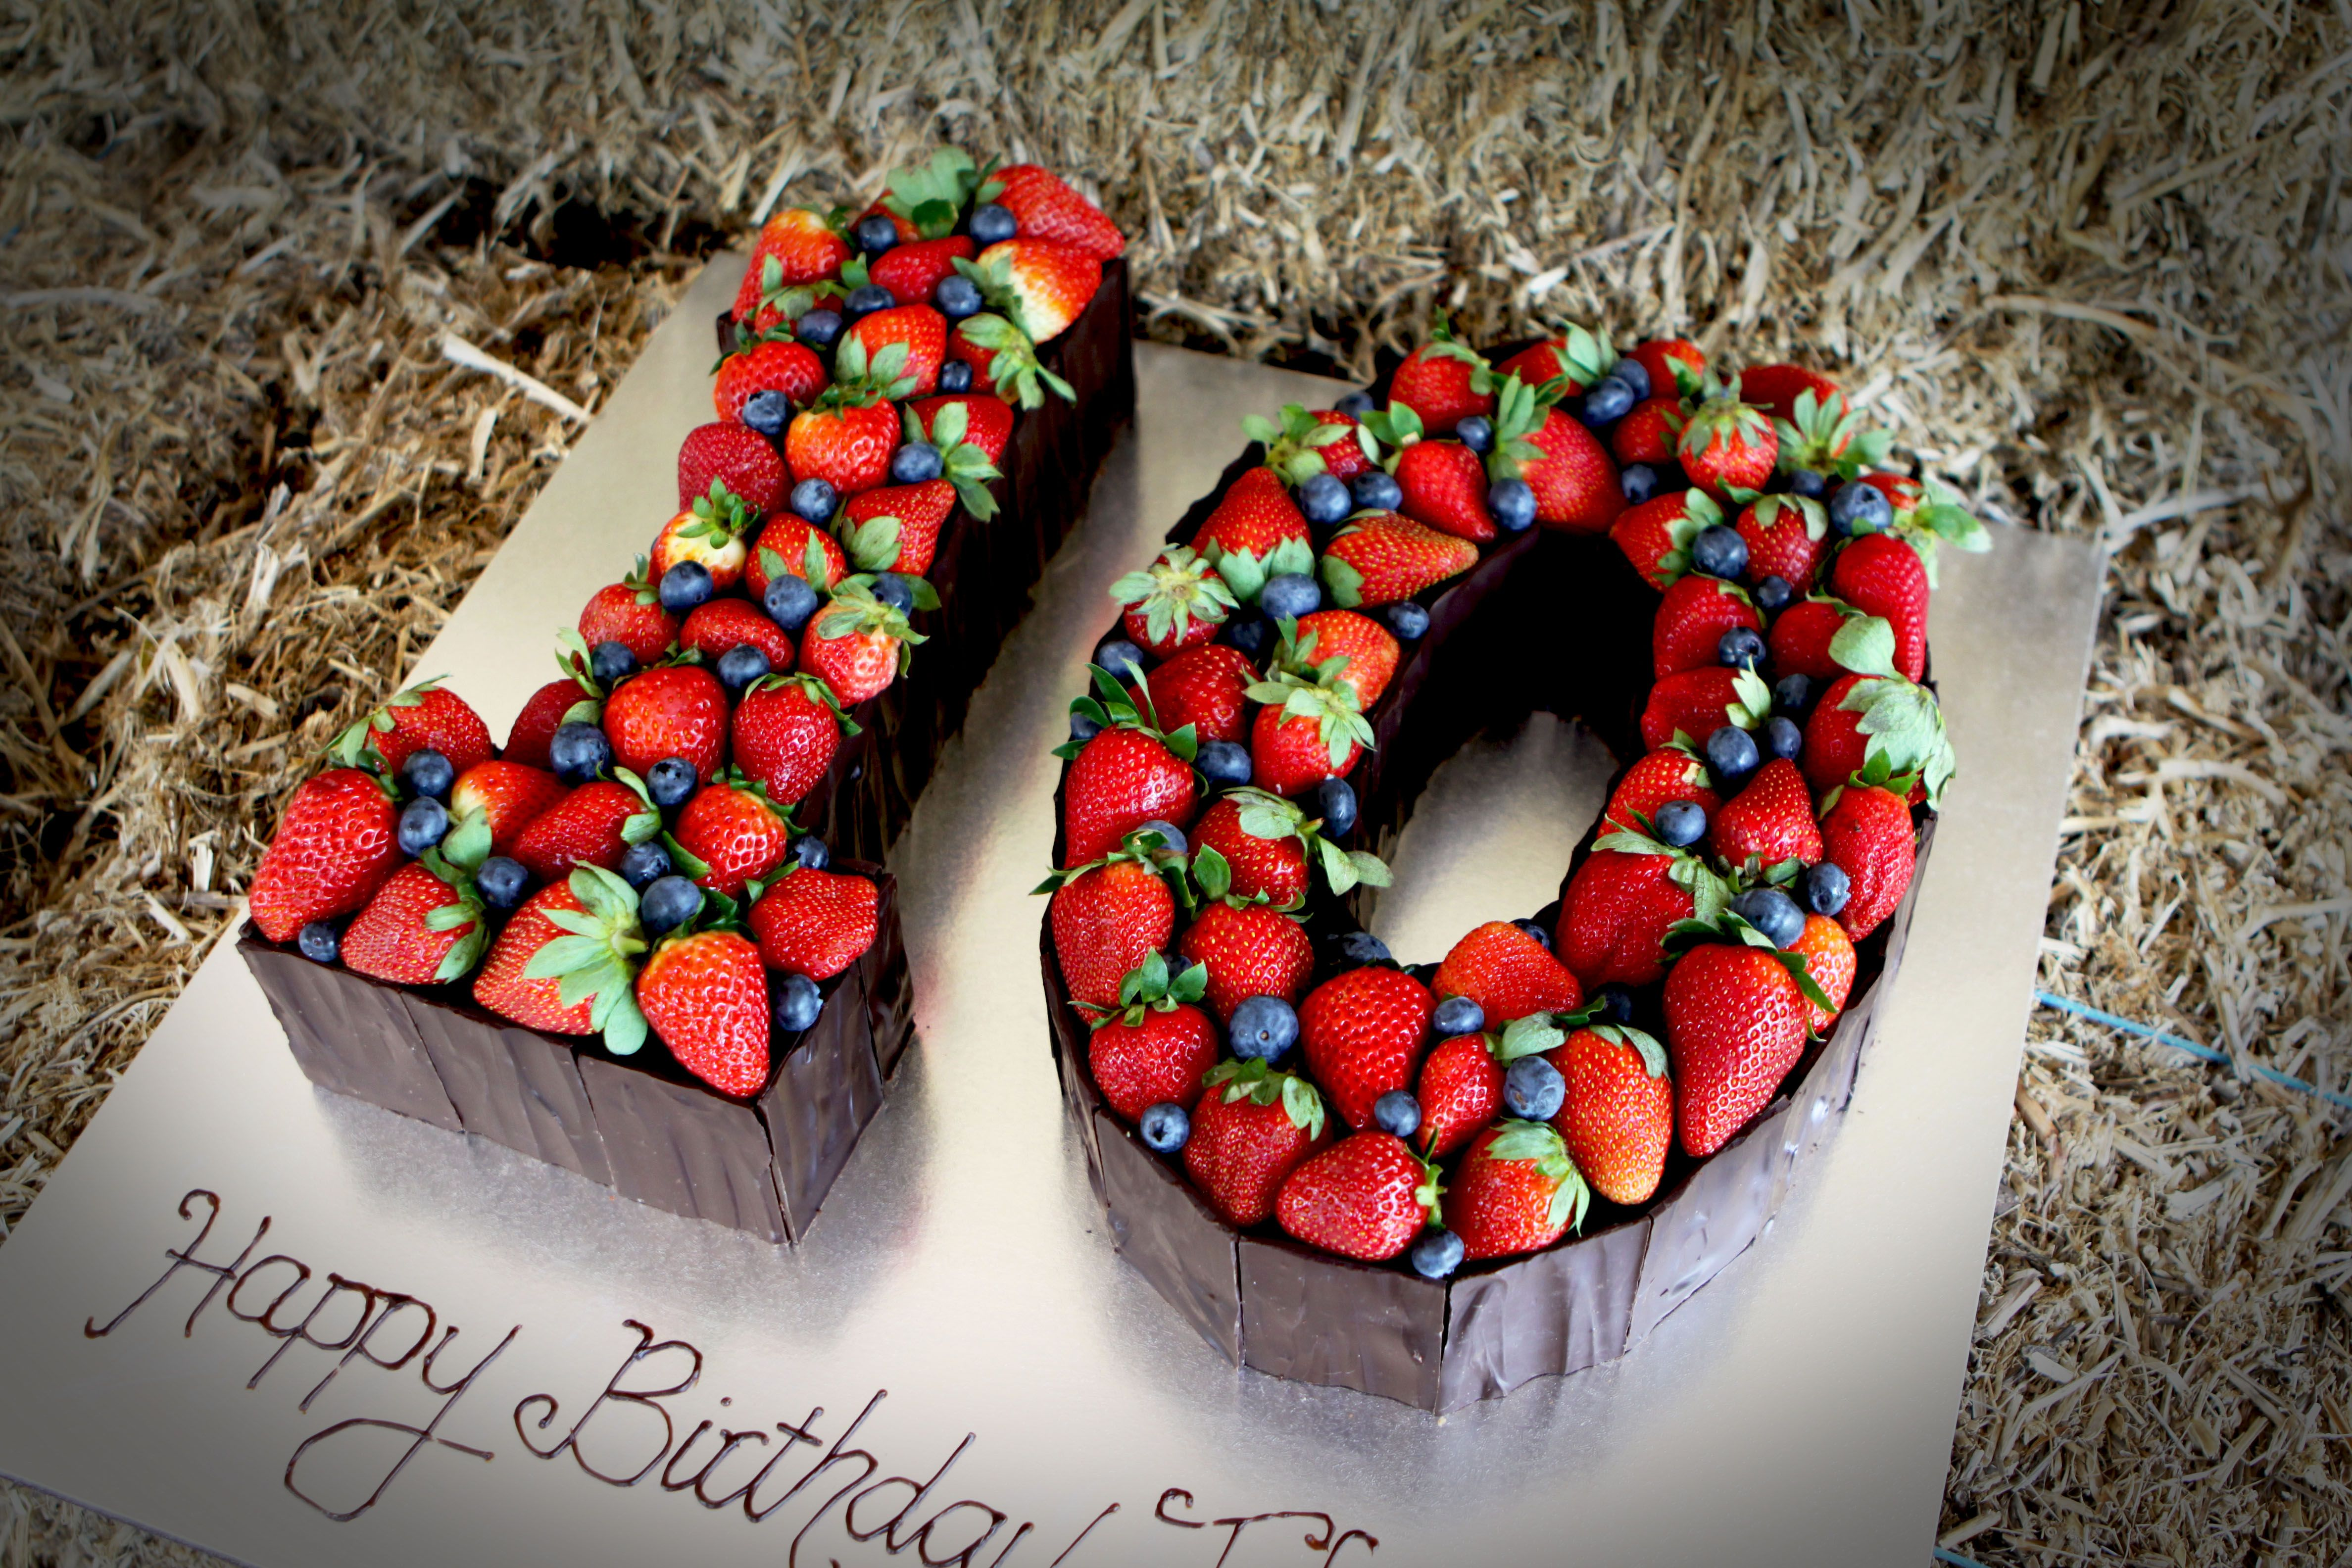 Pleasing Chocolate Mud Number 10 Cake Decorated With Fresh Berries And Funny Birthday Cards Online Ioscodamsfinfo